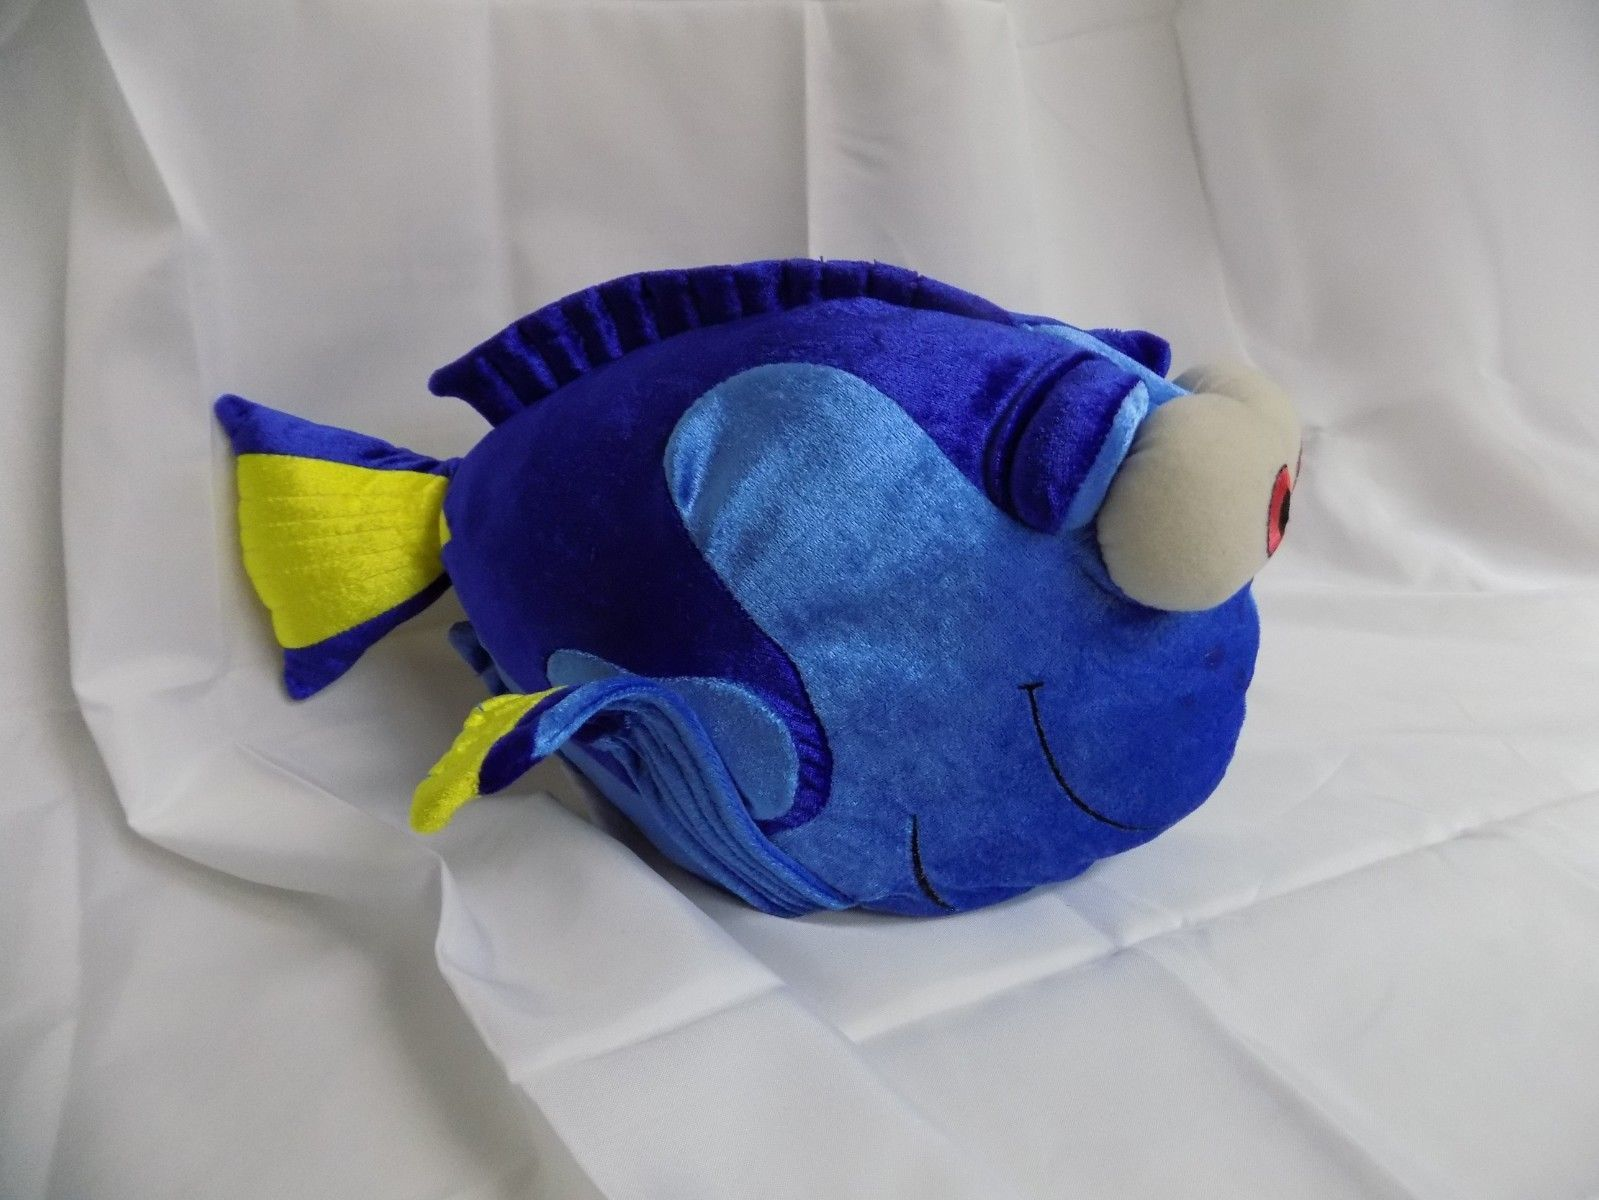 "FINDING DORY PLUSH NEMO STUFFED ANIMAL DOLL LARGE 15"" FISH DISNEY PIXAR TOY"